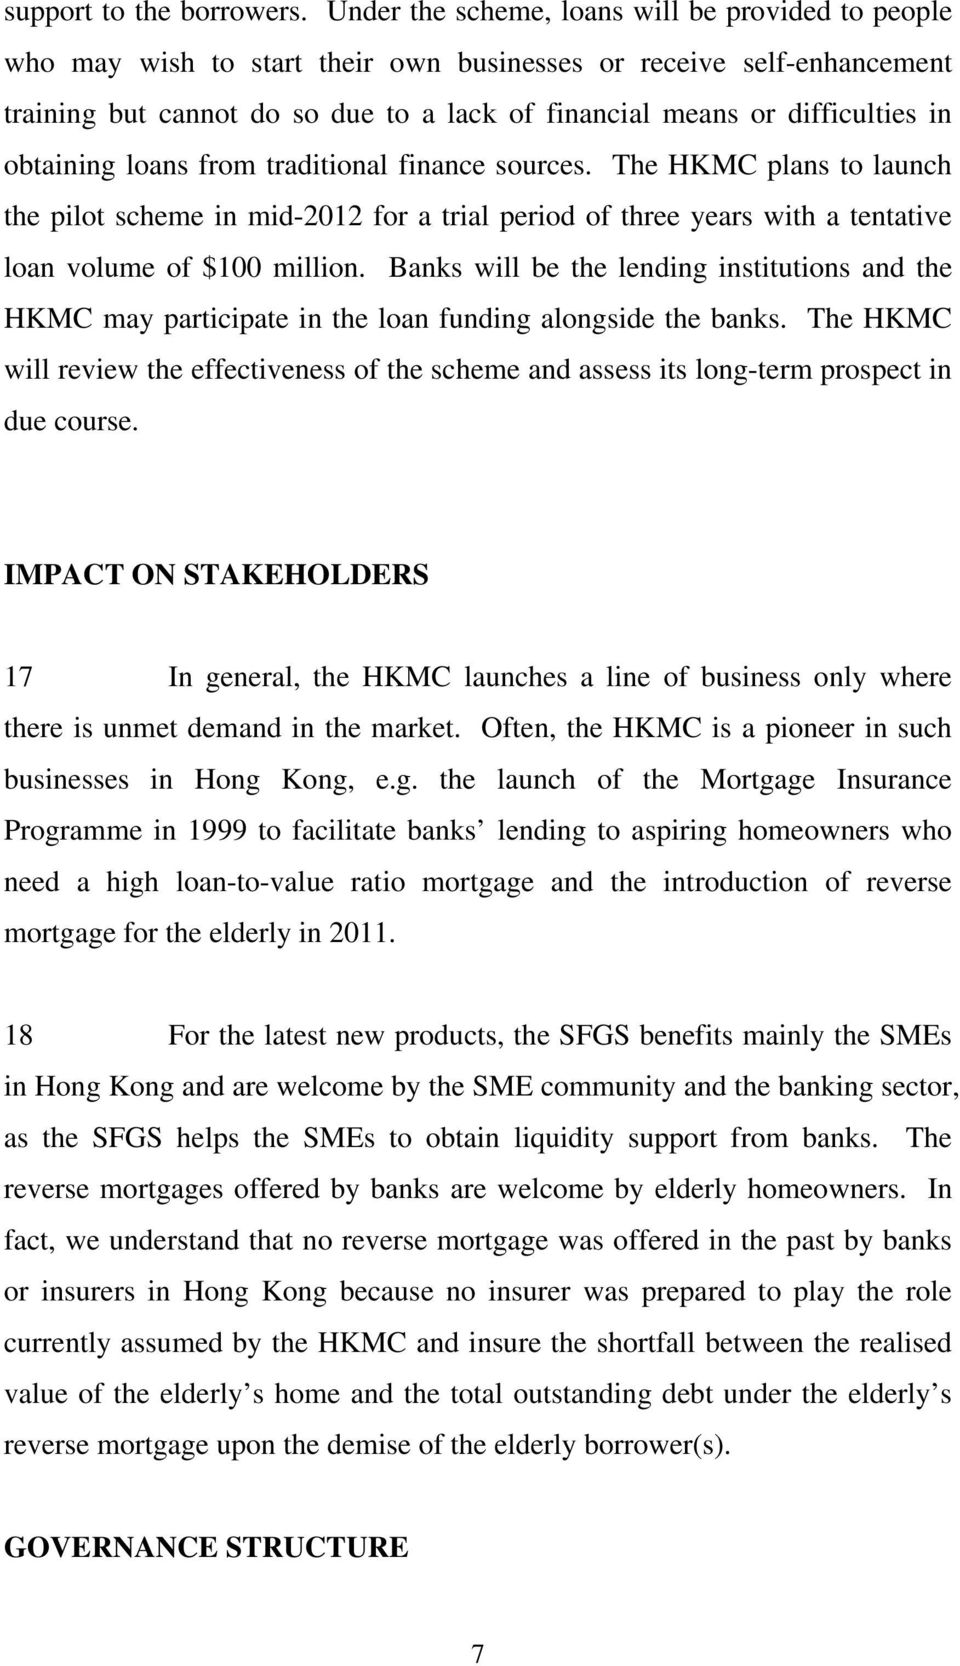 obtaining loans from traditional finance sources. The HKMC plans to launch the pilot scheme in mid-2012 for a trial period of three years with a tentative loan volume of $100 million.